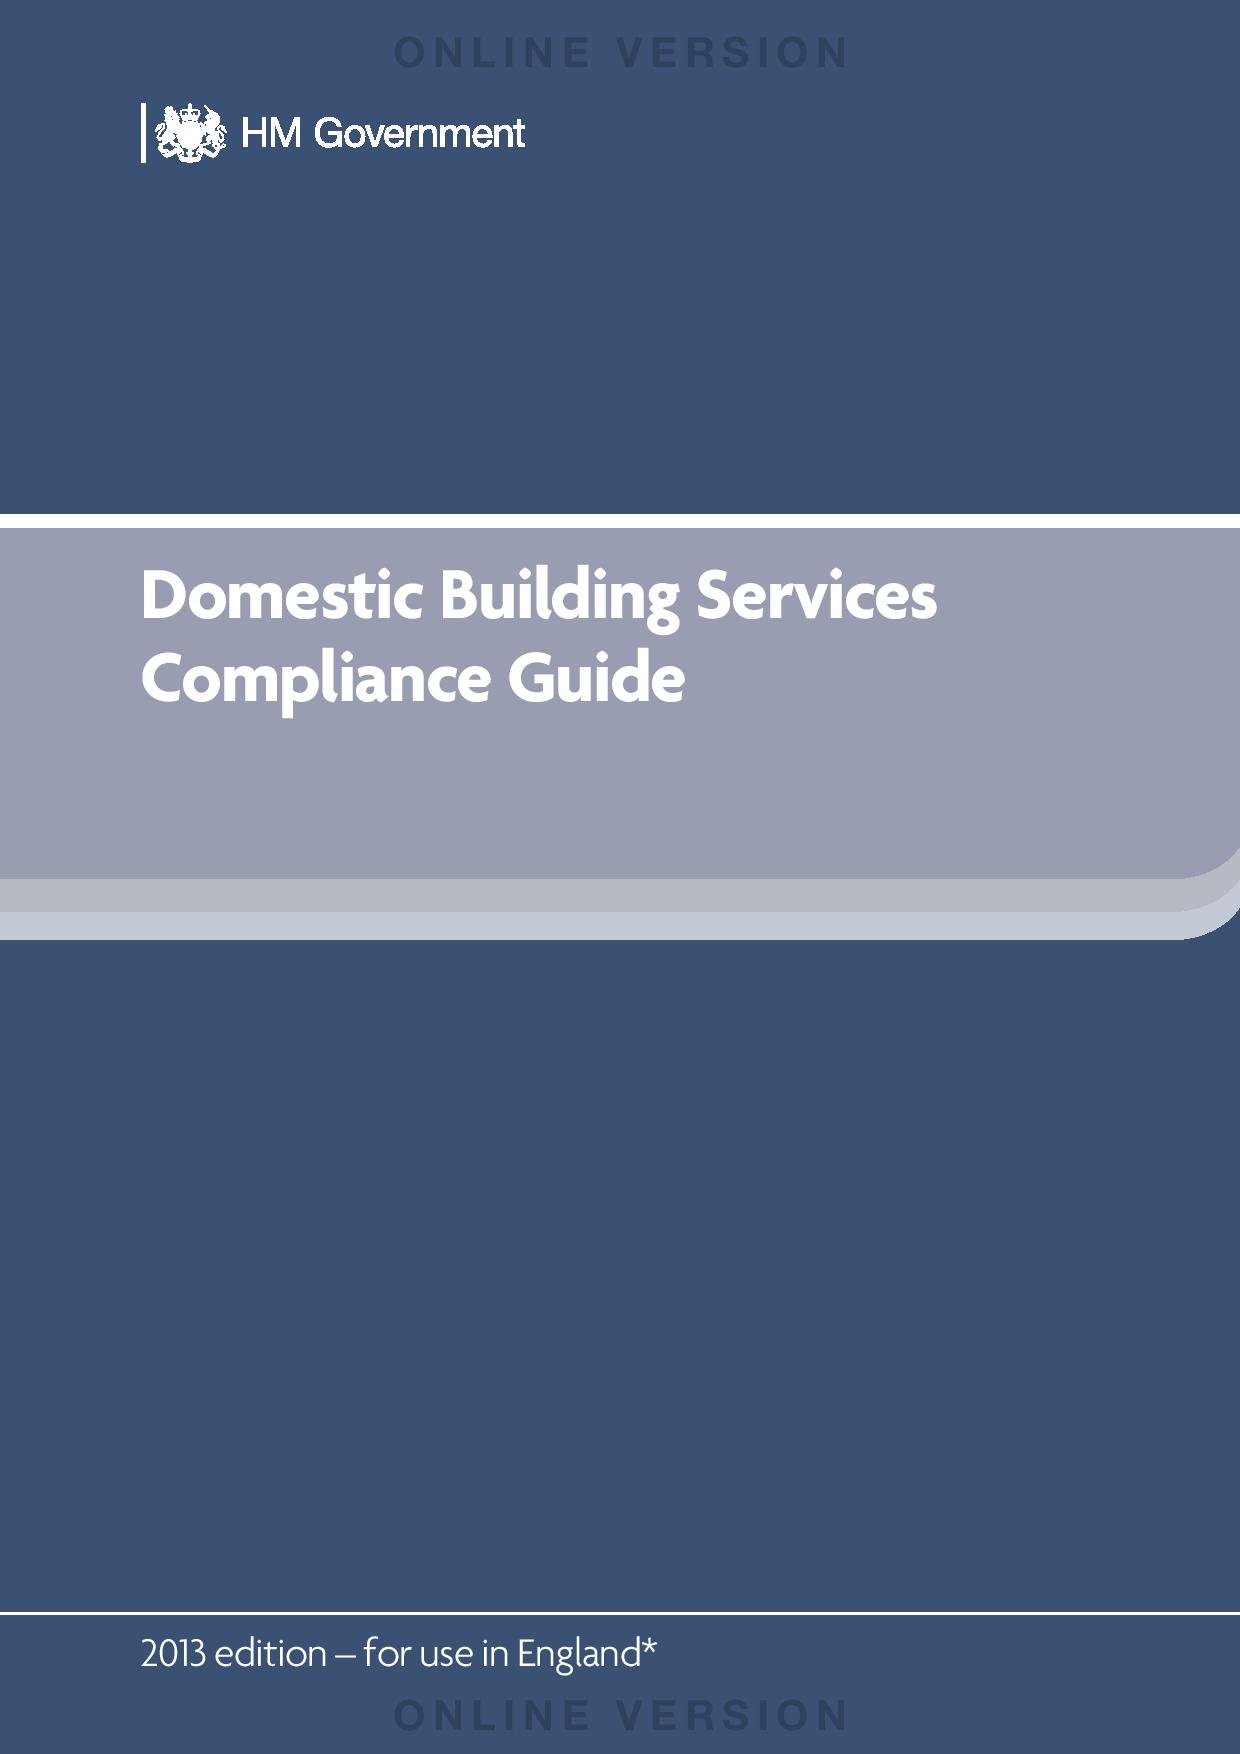 domestic_building_services_compliance_guide 2013-page-001